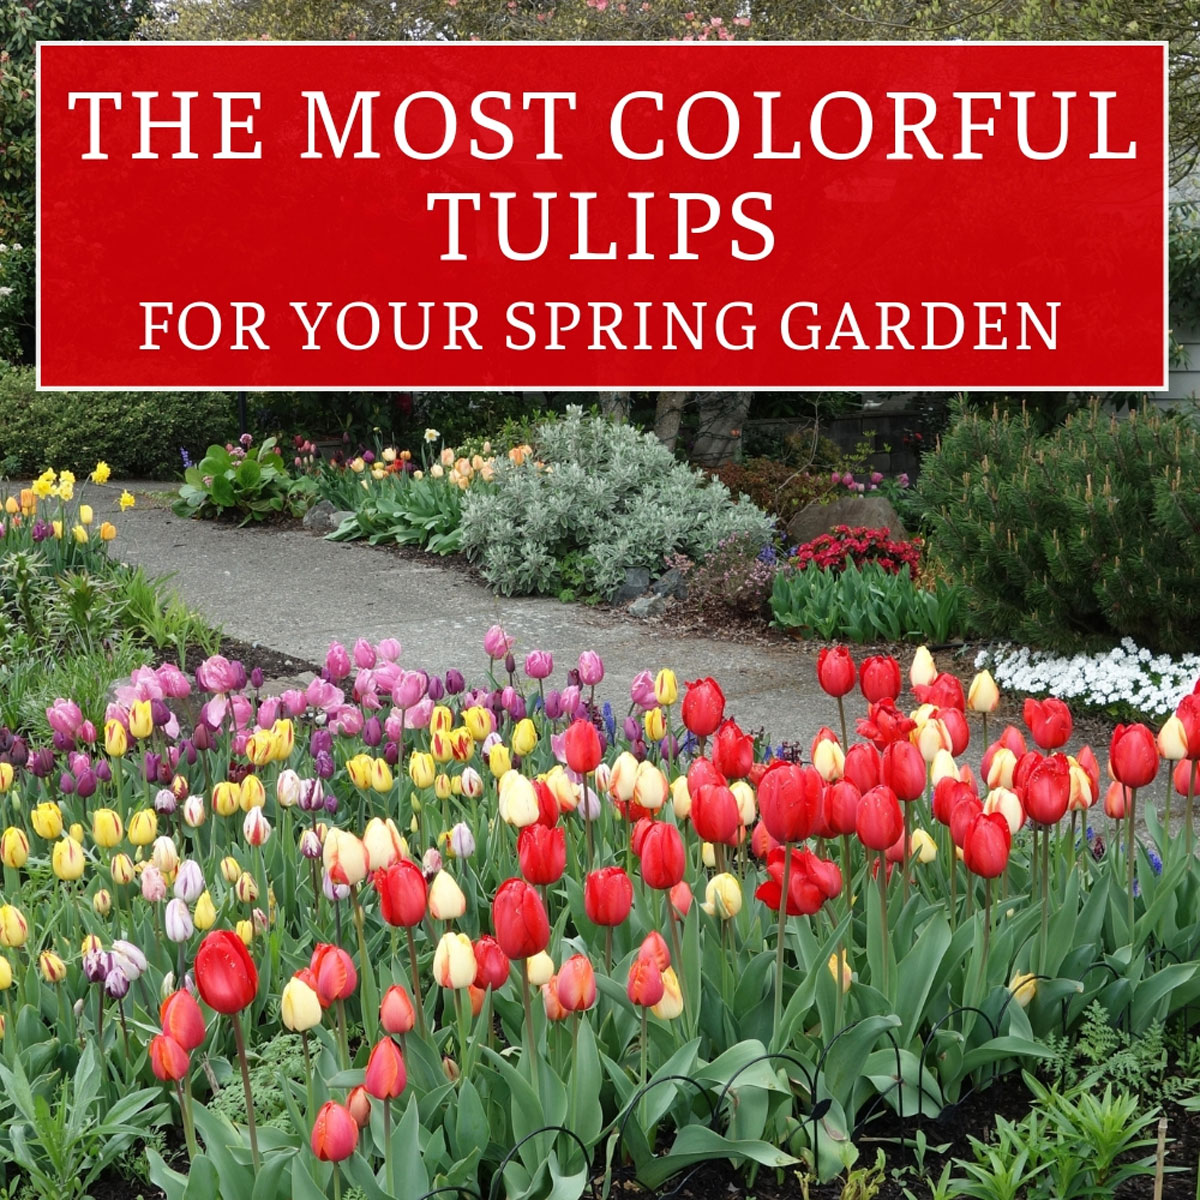 Most-Colorful-Tulips-for-Your-Spring-Garden